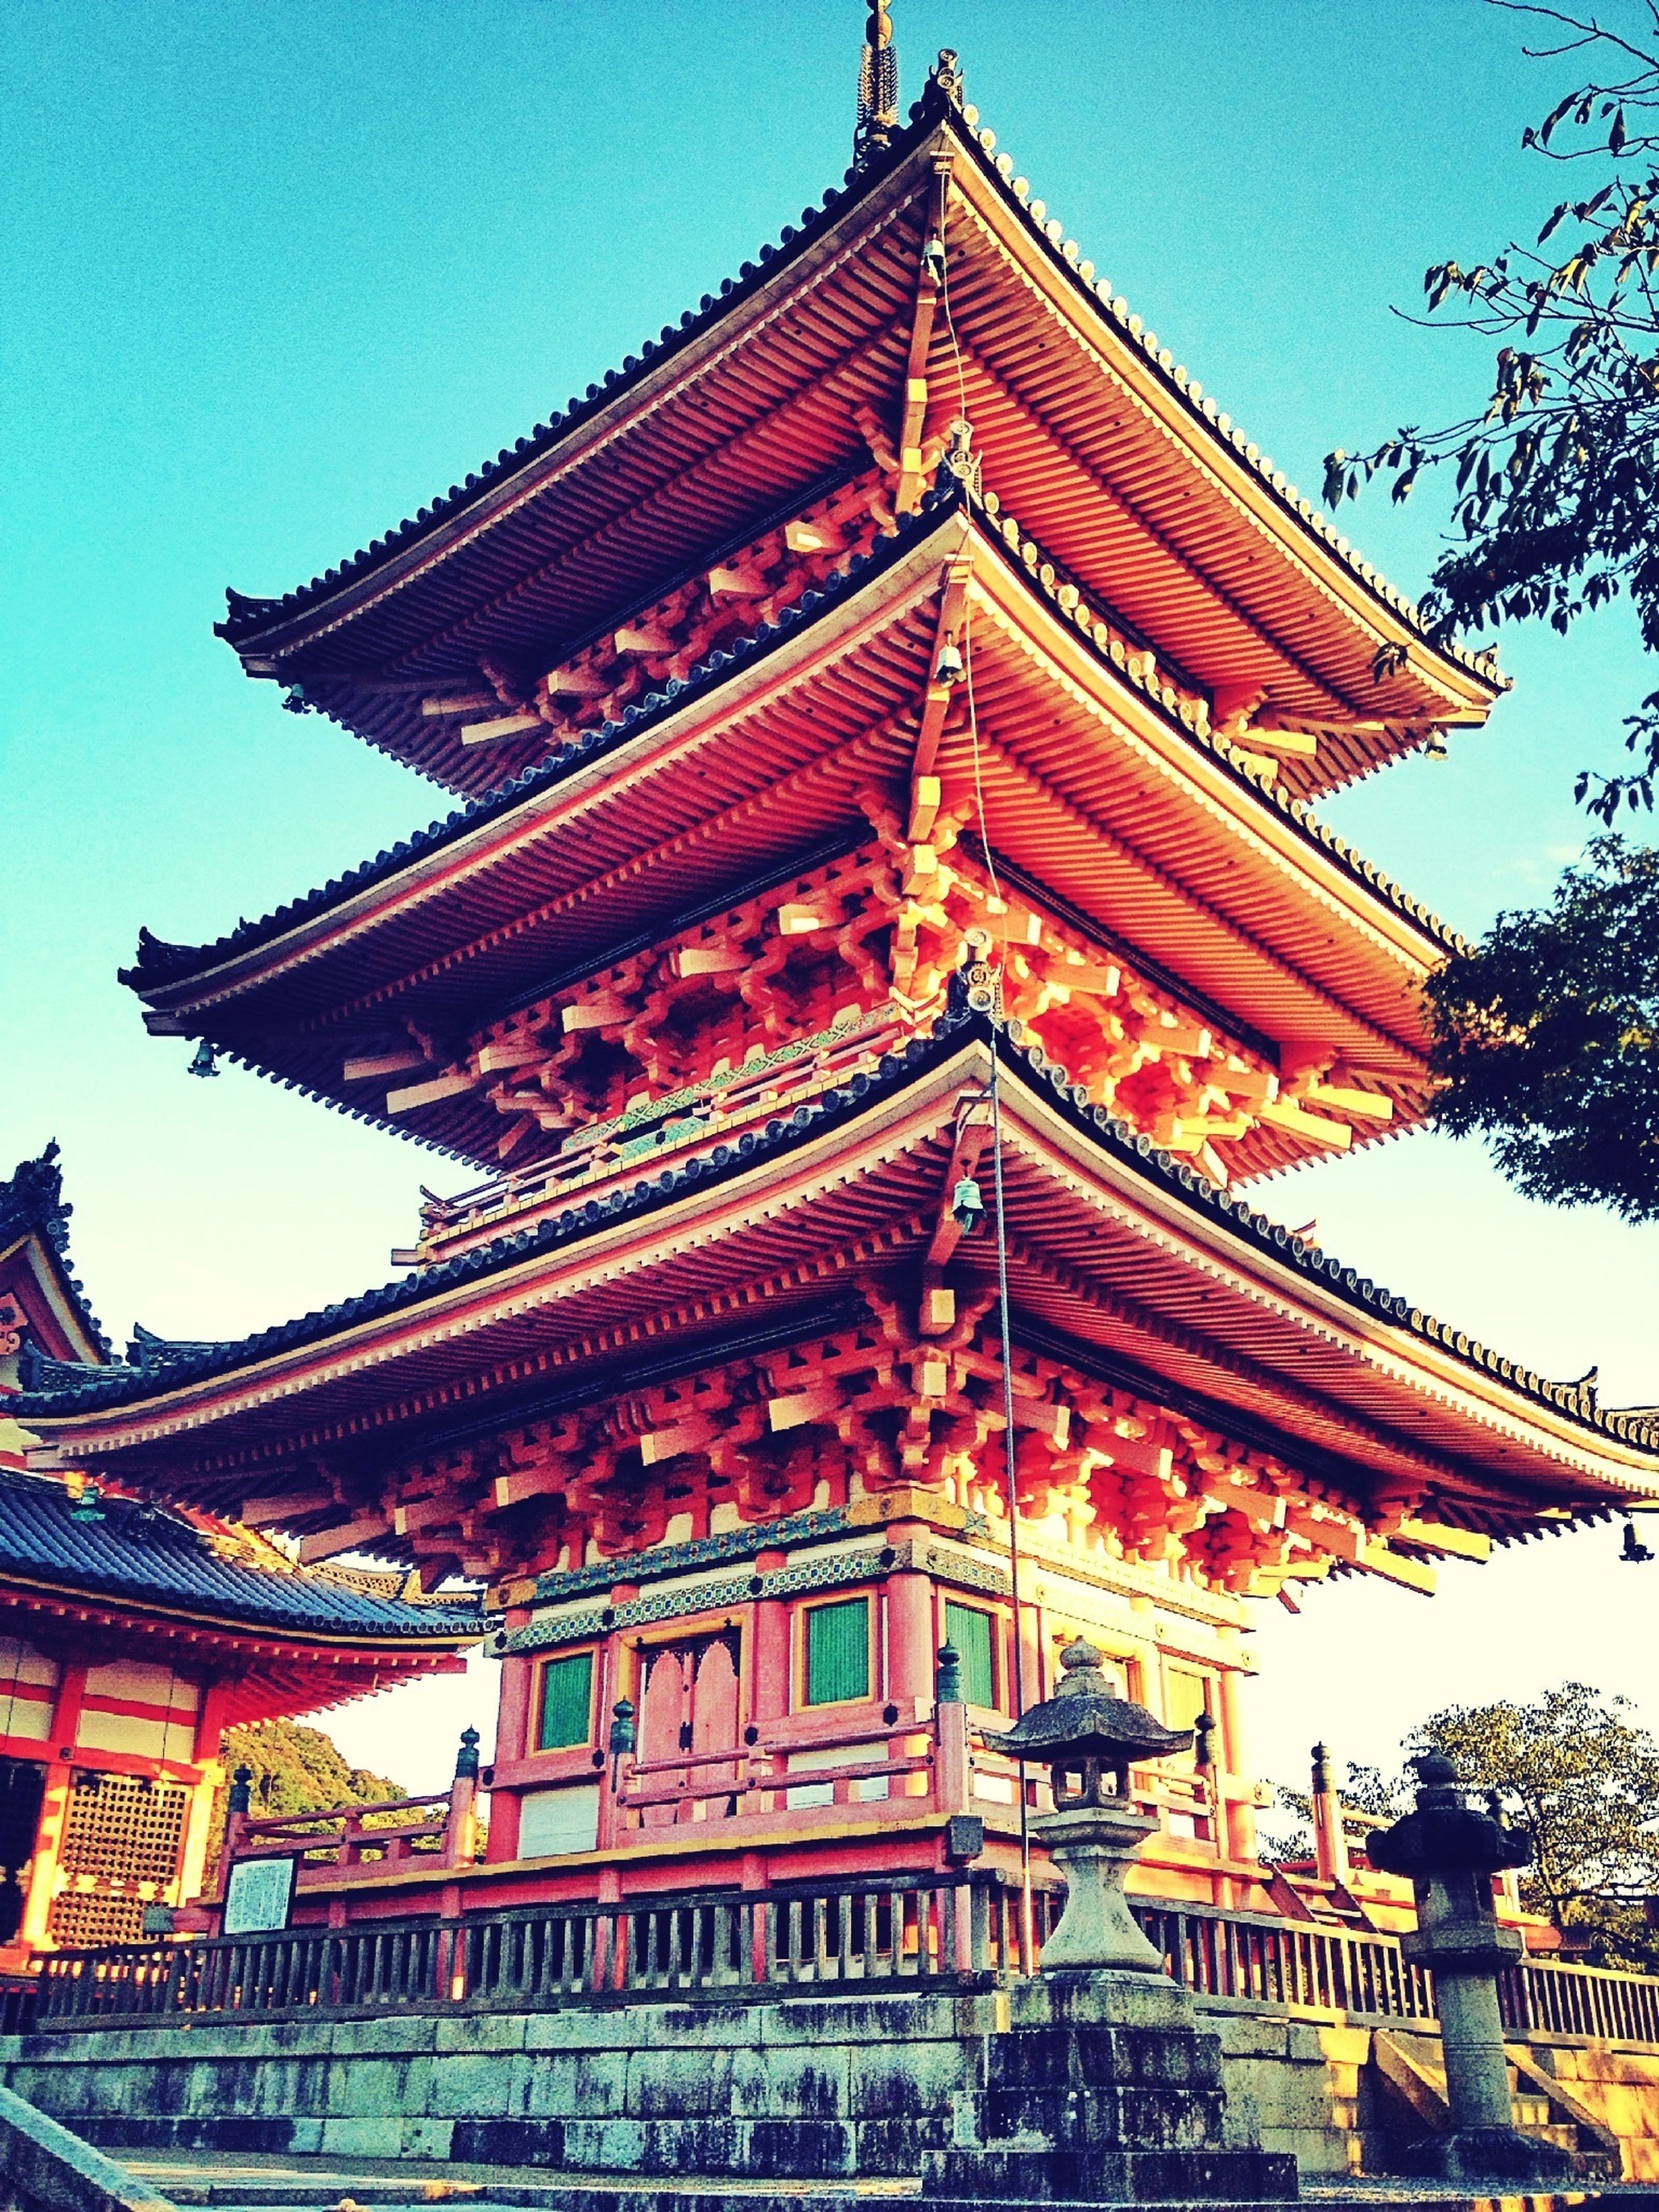 low angle view, architecture, built structure, building exterior, place of worship, religion, spirituality, temple - building, temple, famous place, ornate, clear sky, travel destinations, tradition, pagoda, sky, tourism, cultures, travel